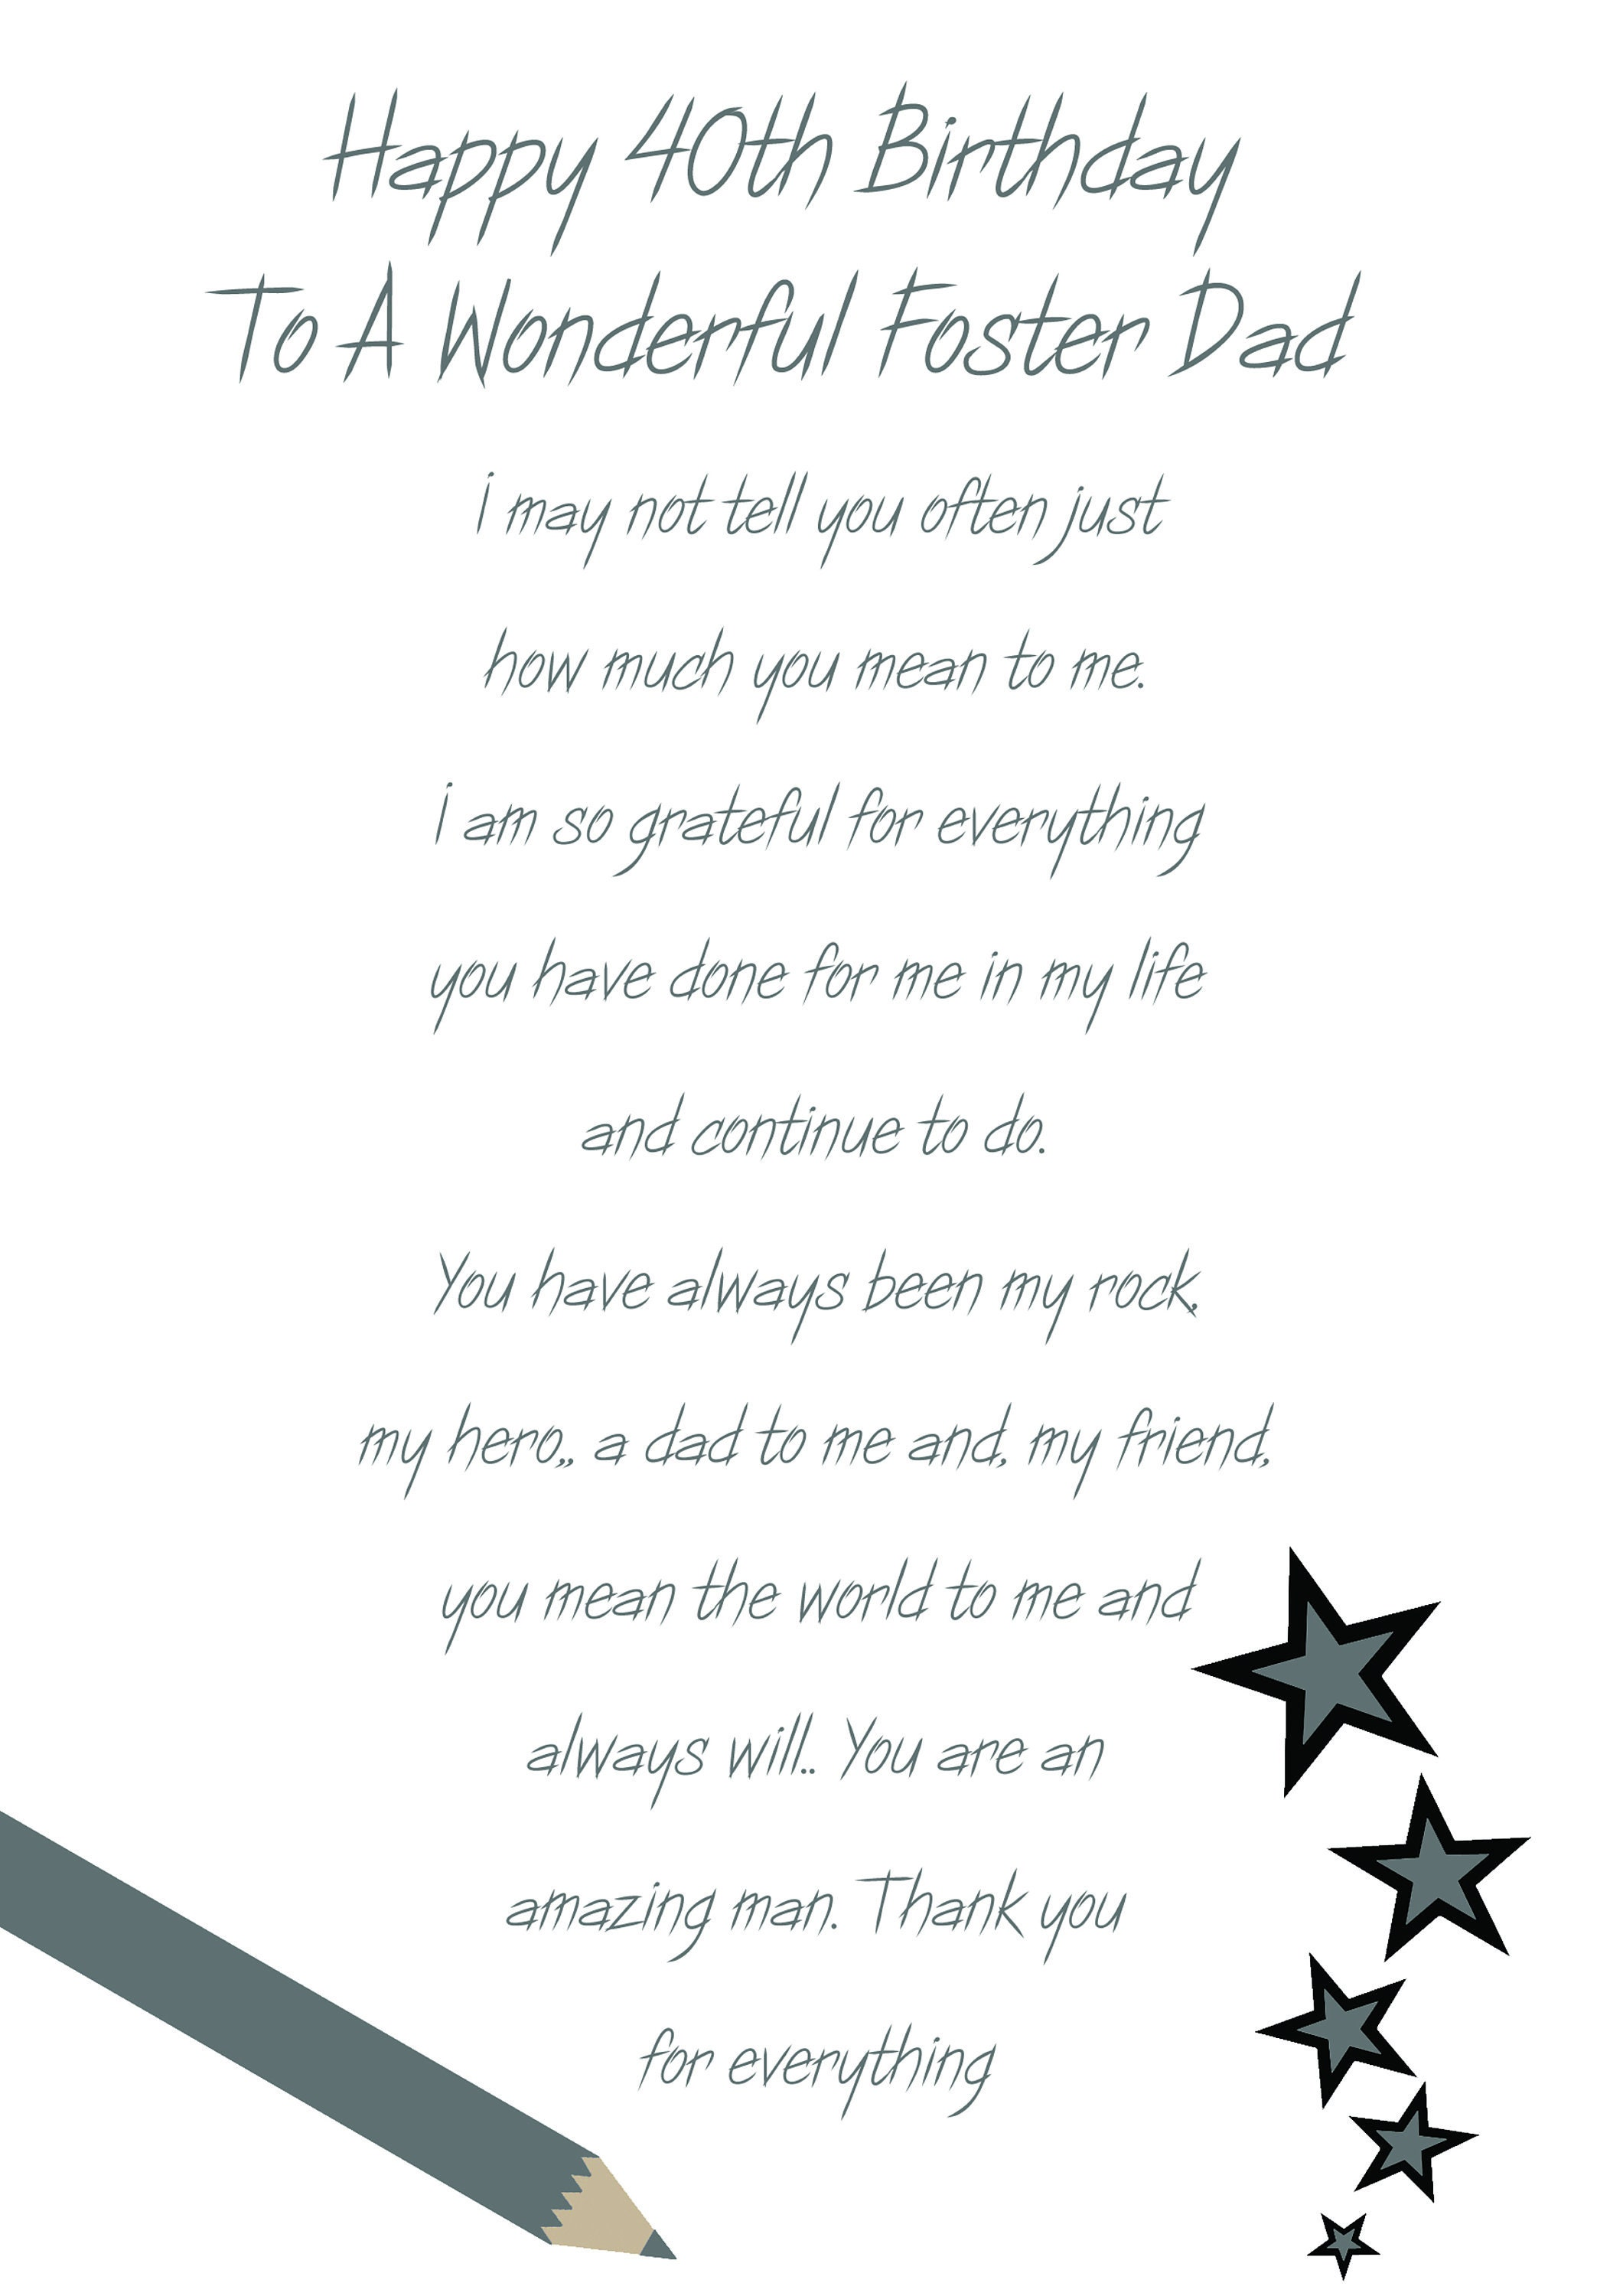 Foster Dad 40 Birthday Card